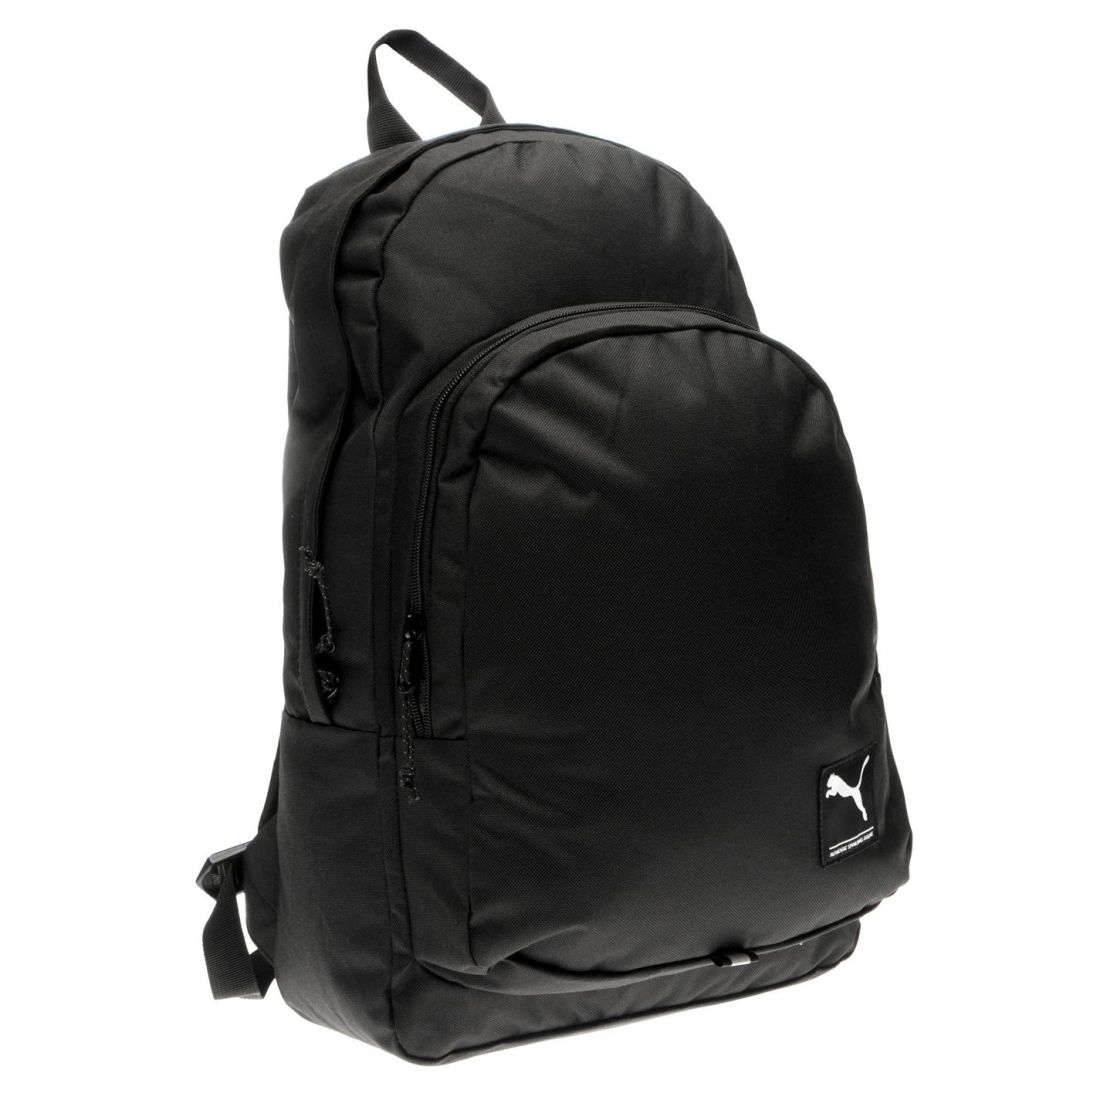 1f6c7a44d28 Puma Unisex Academy Backpack Back Pack Zip Sport 5057501688256   eBay